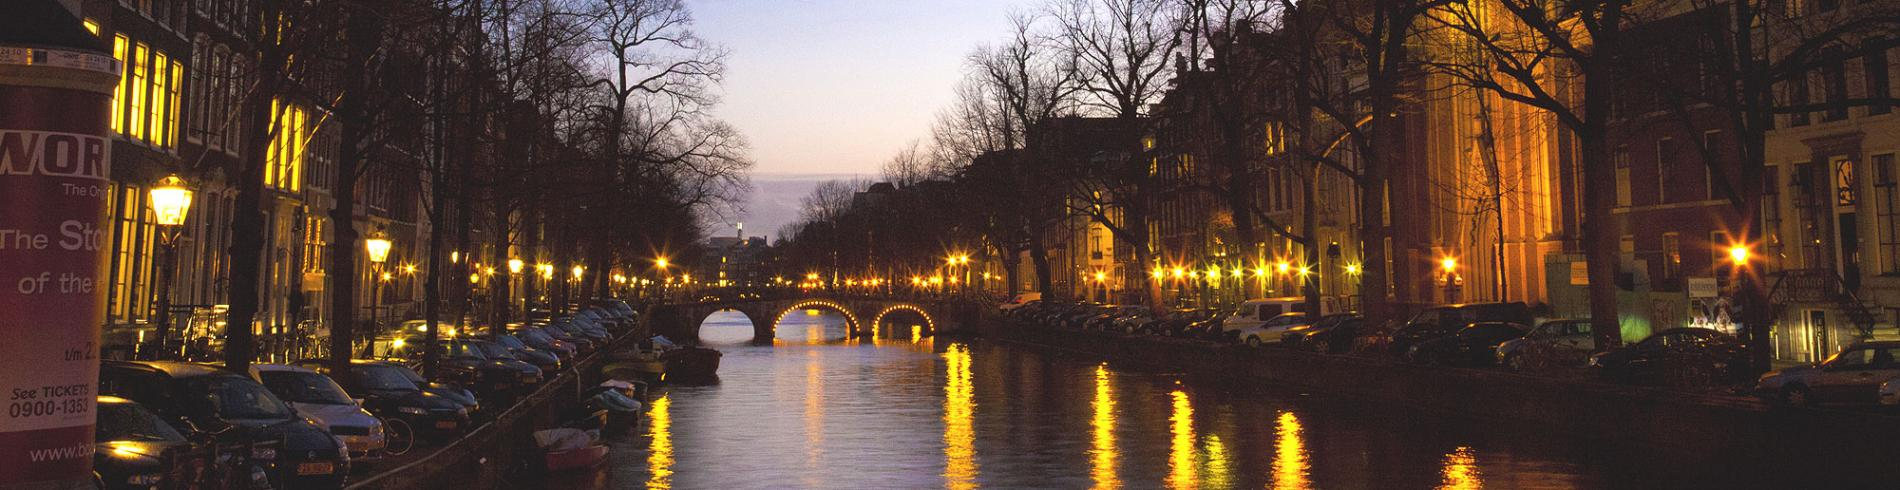 Amsterdam canal by night in winter